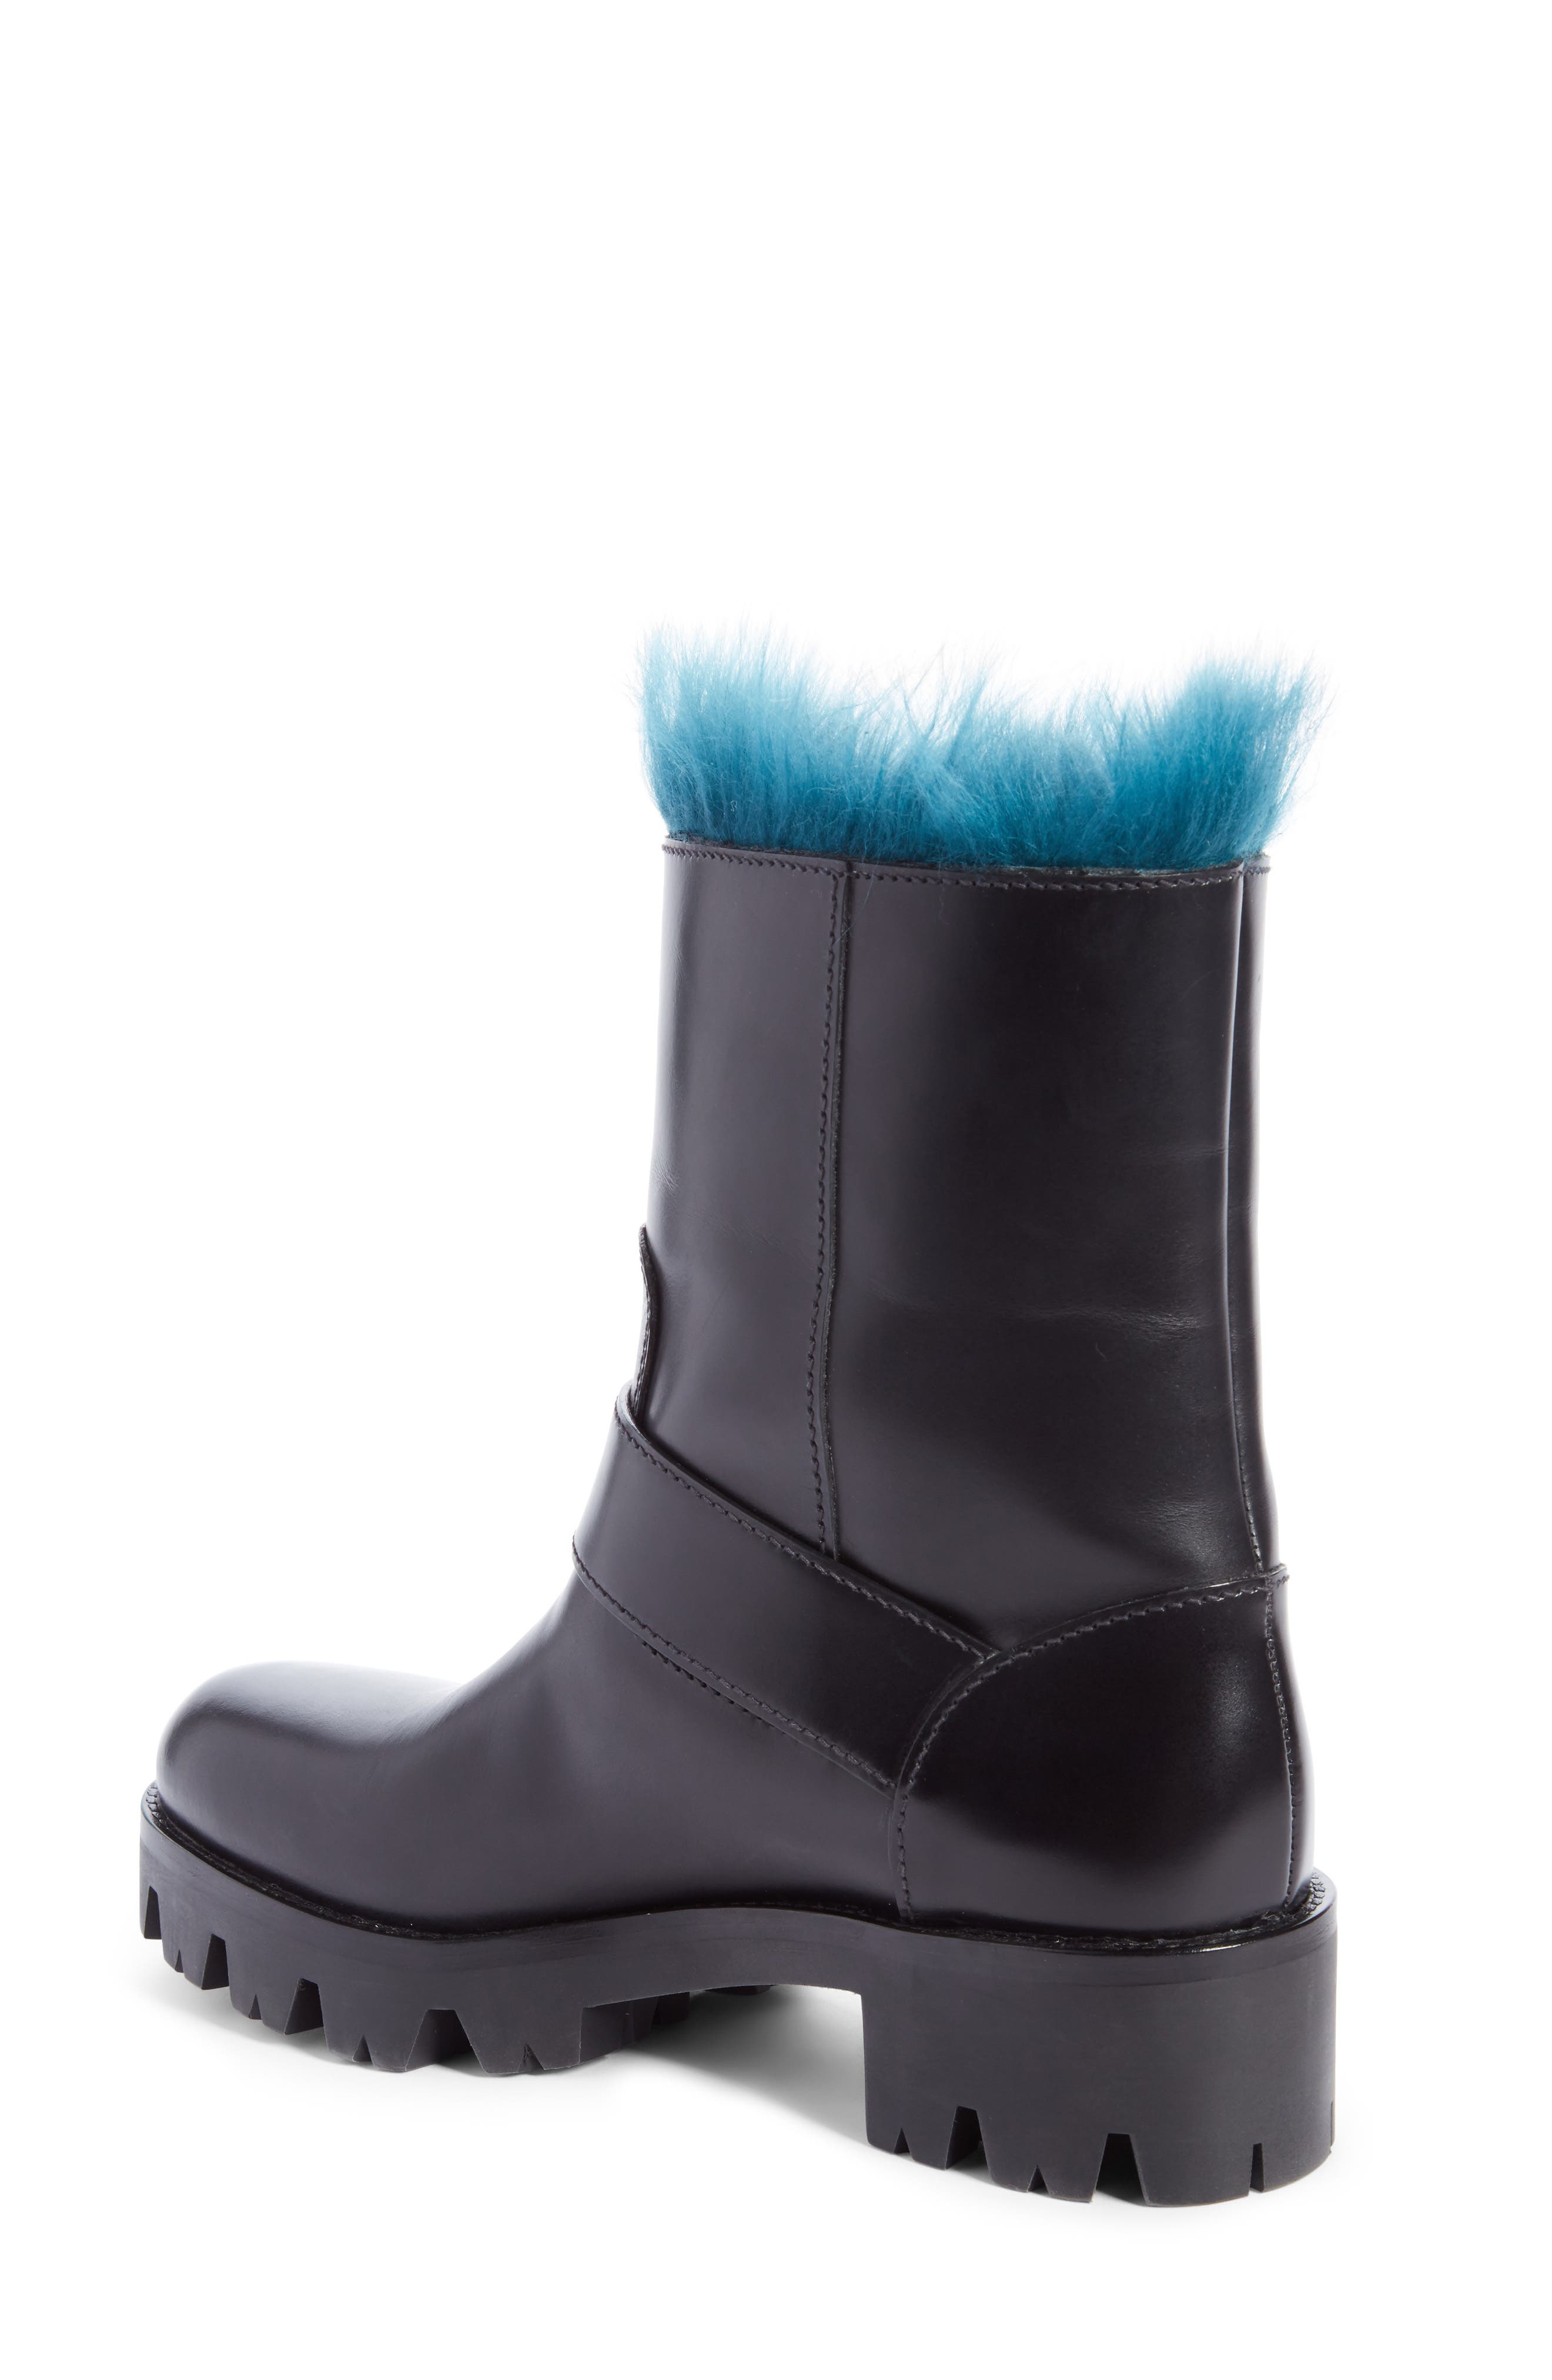 Genuine Shearling Lined Boot,                             Alternate thumbnail 2, color,                             001